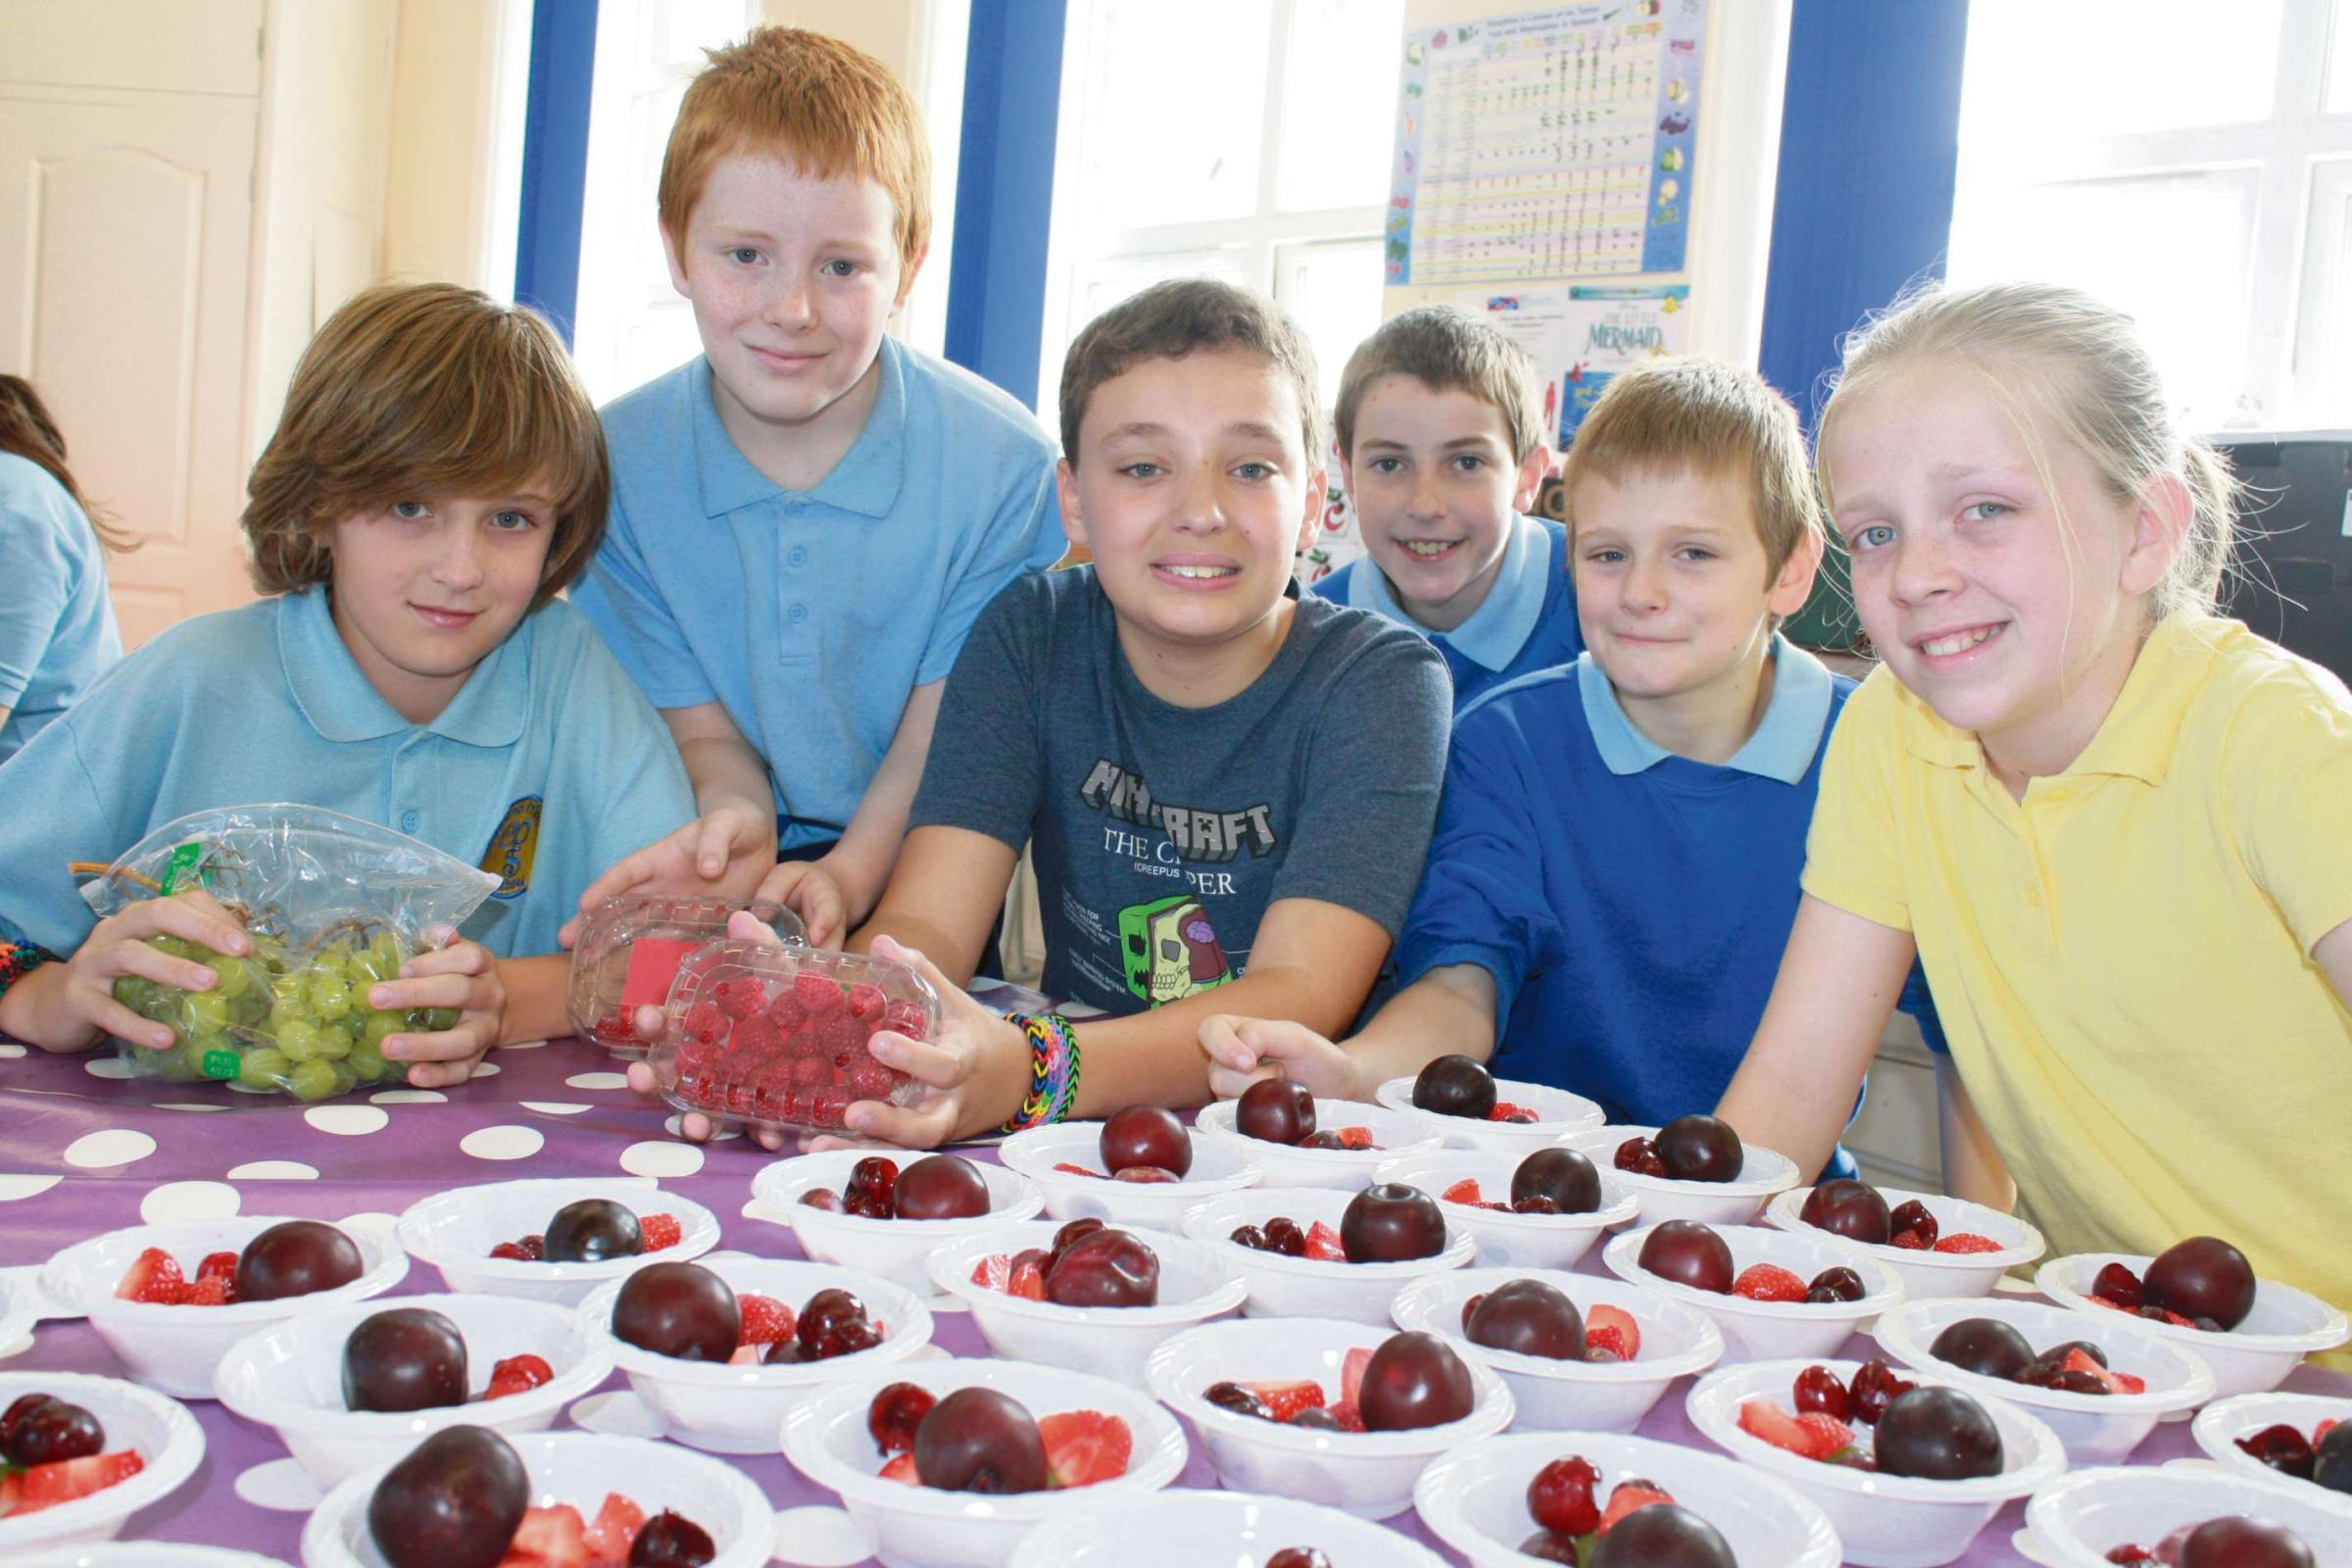 FRUITS OF OUR LABOURS: Cadoxton primary pupils exercise portion control